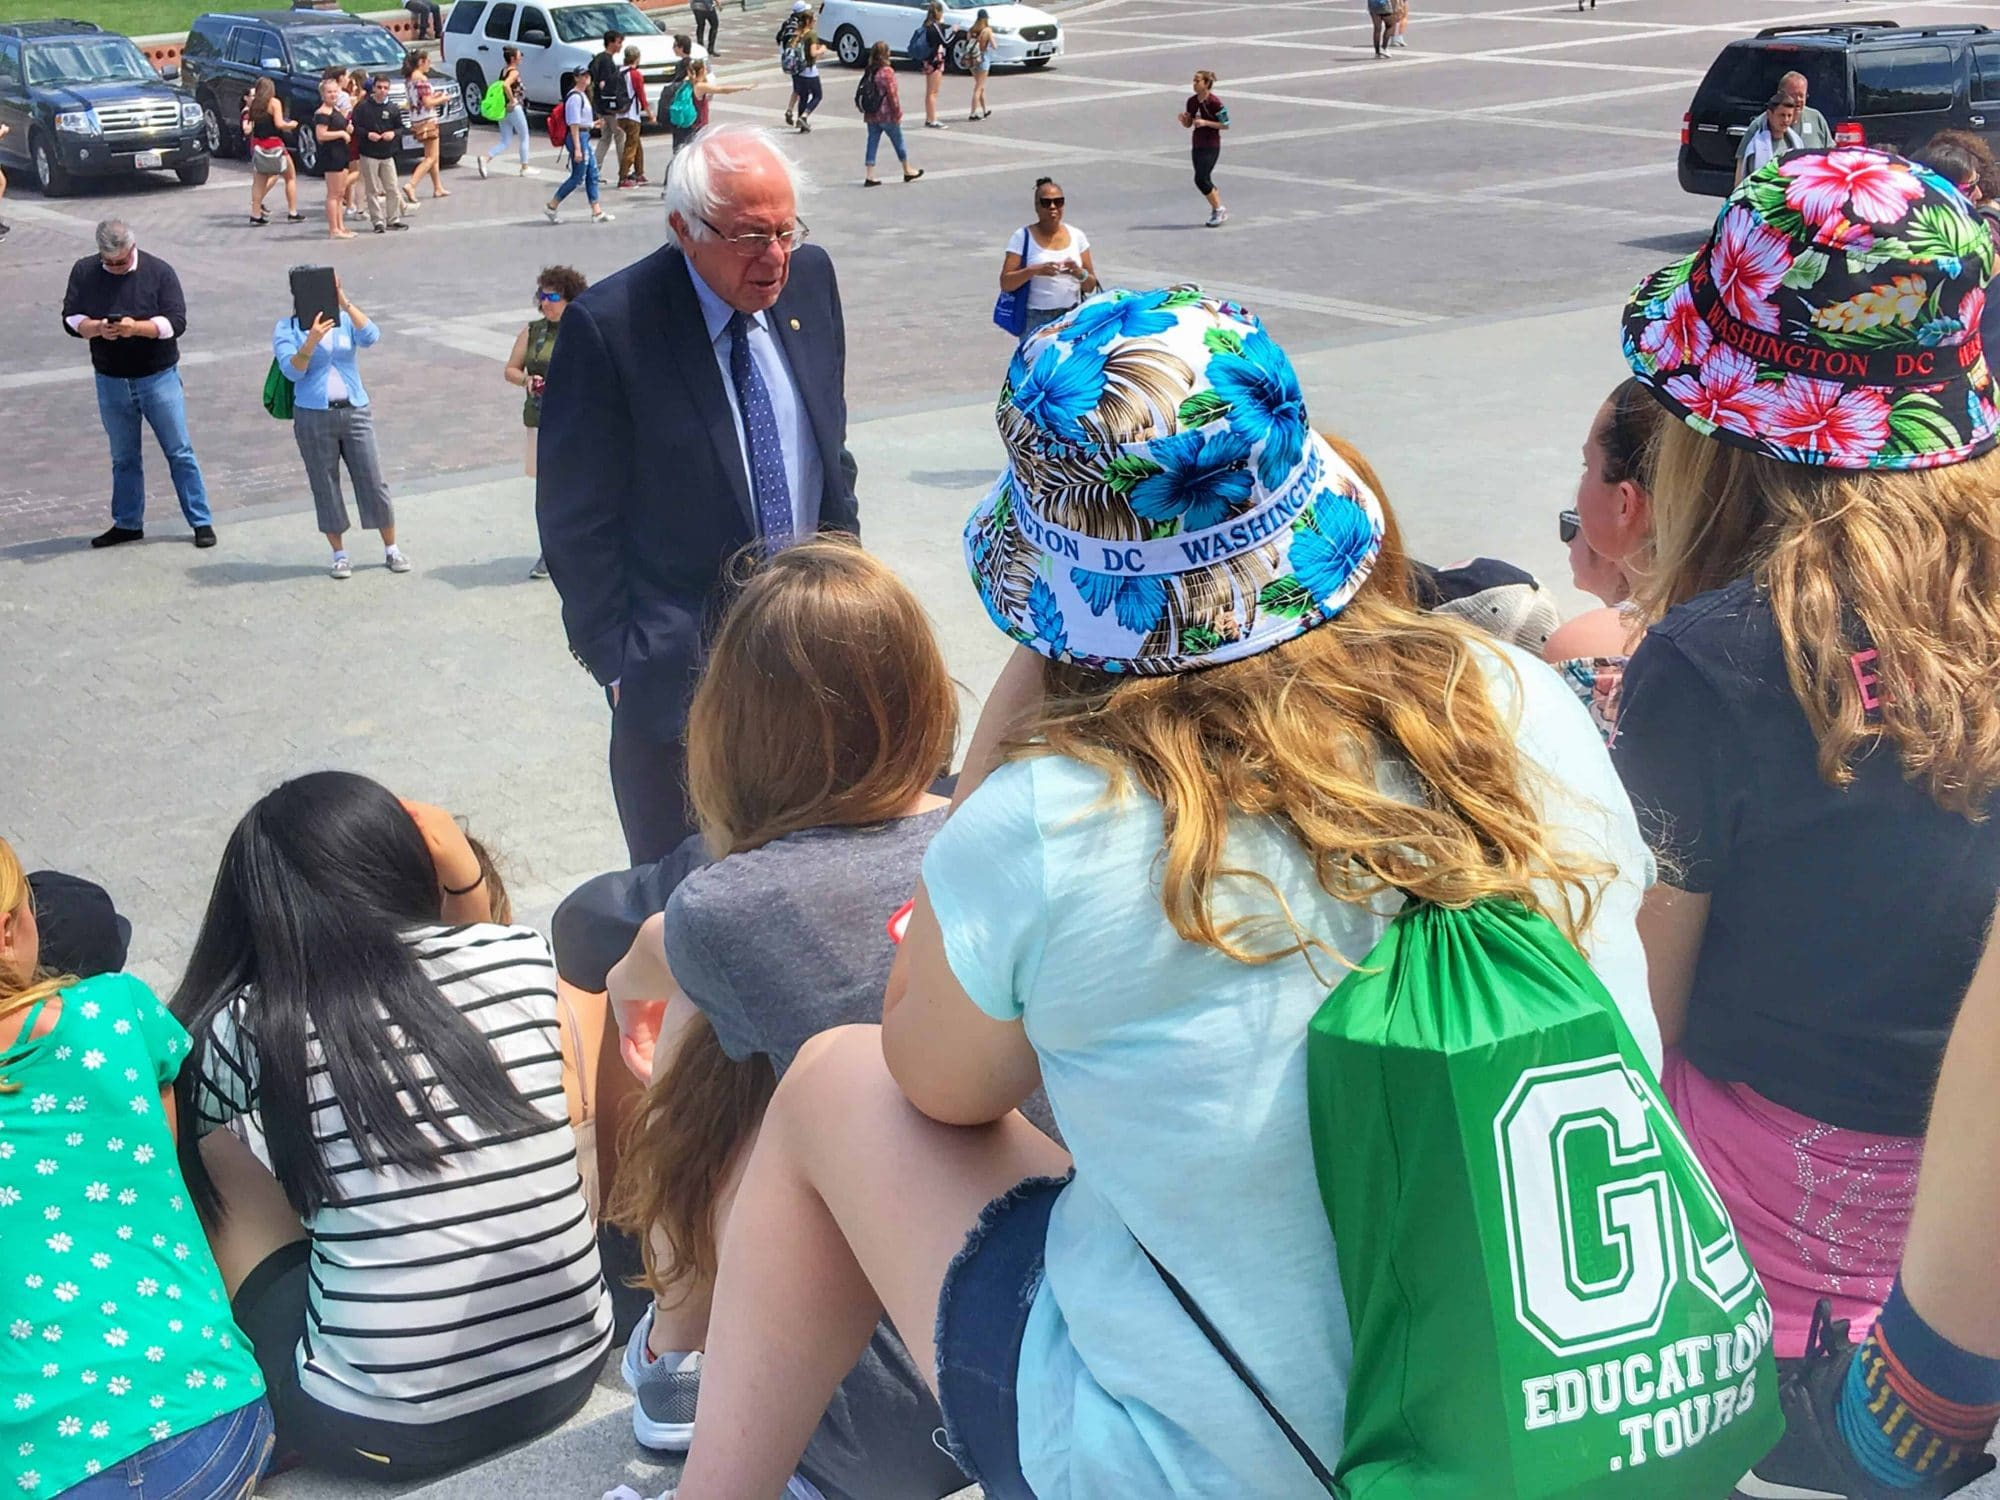 Senator Bernie Sanders on the steps of the US Capitol meeting with students on a class trip